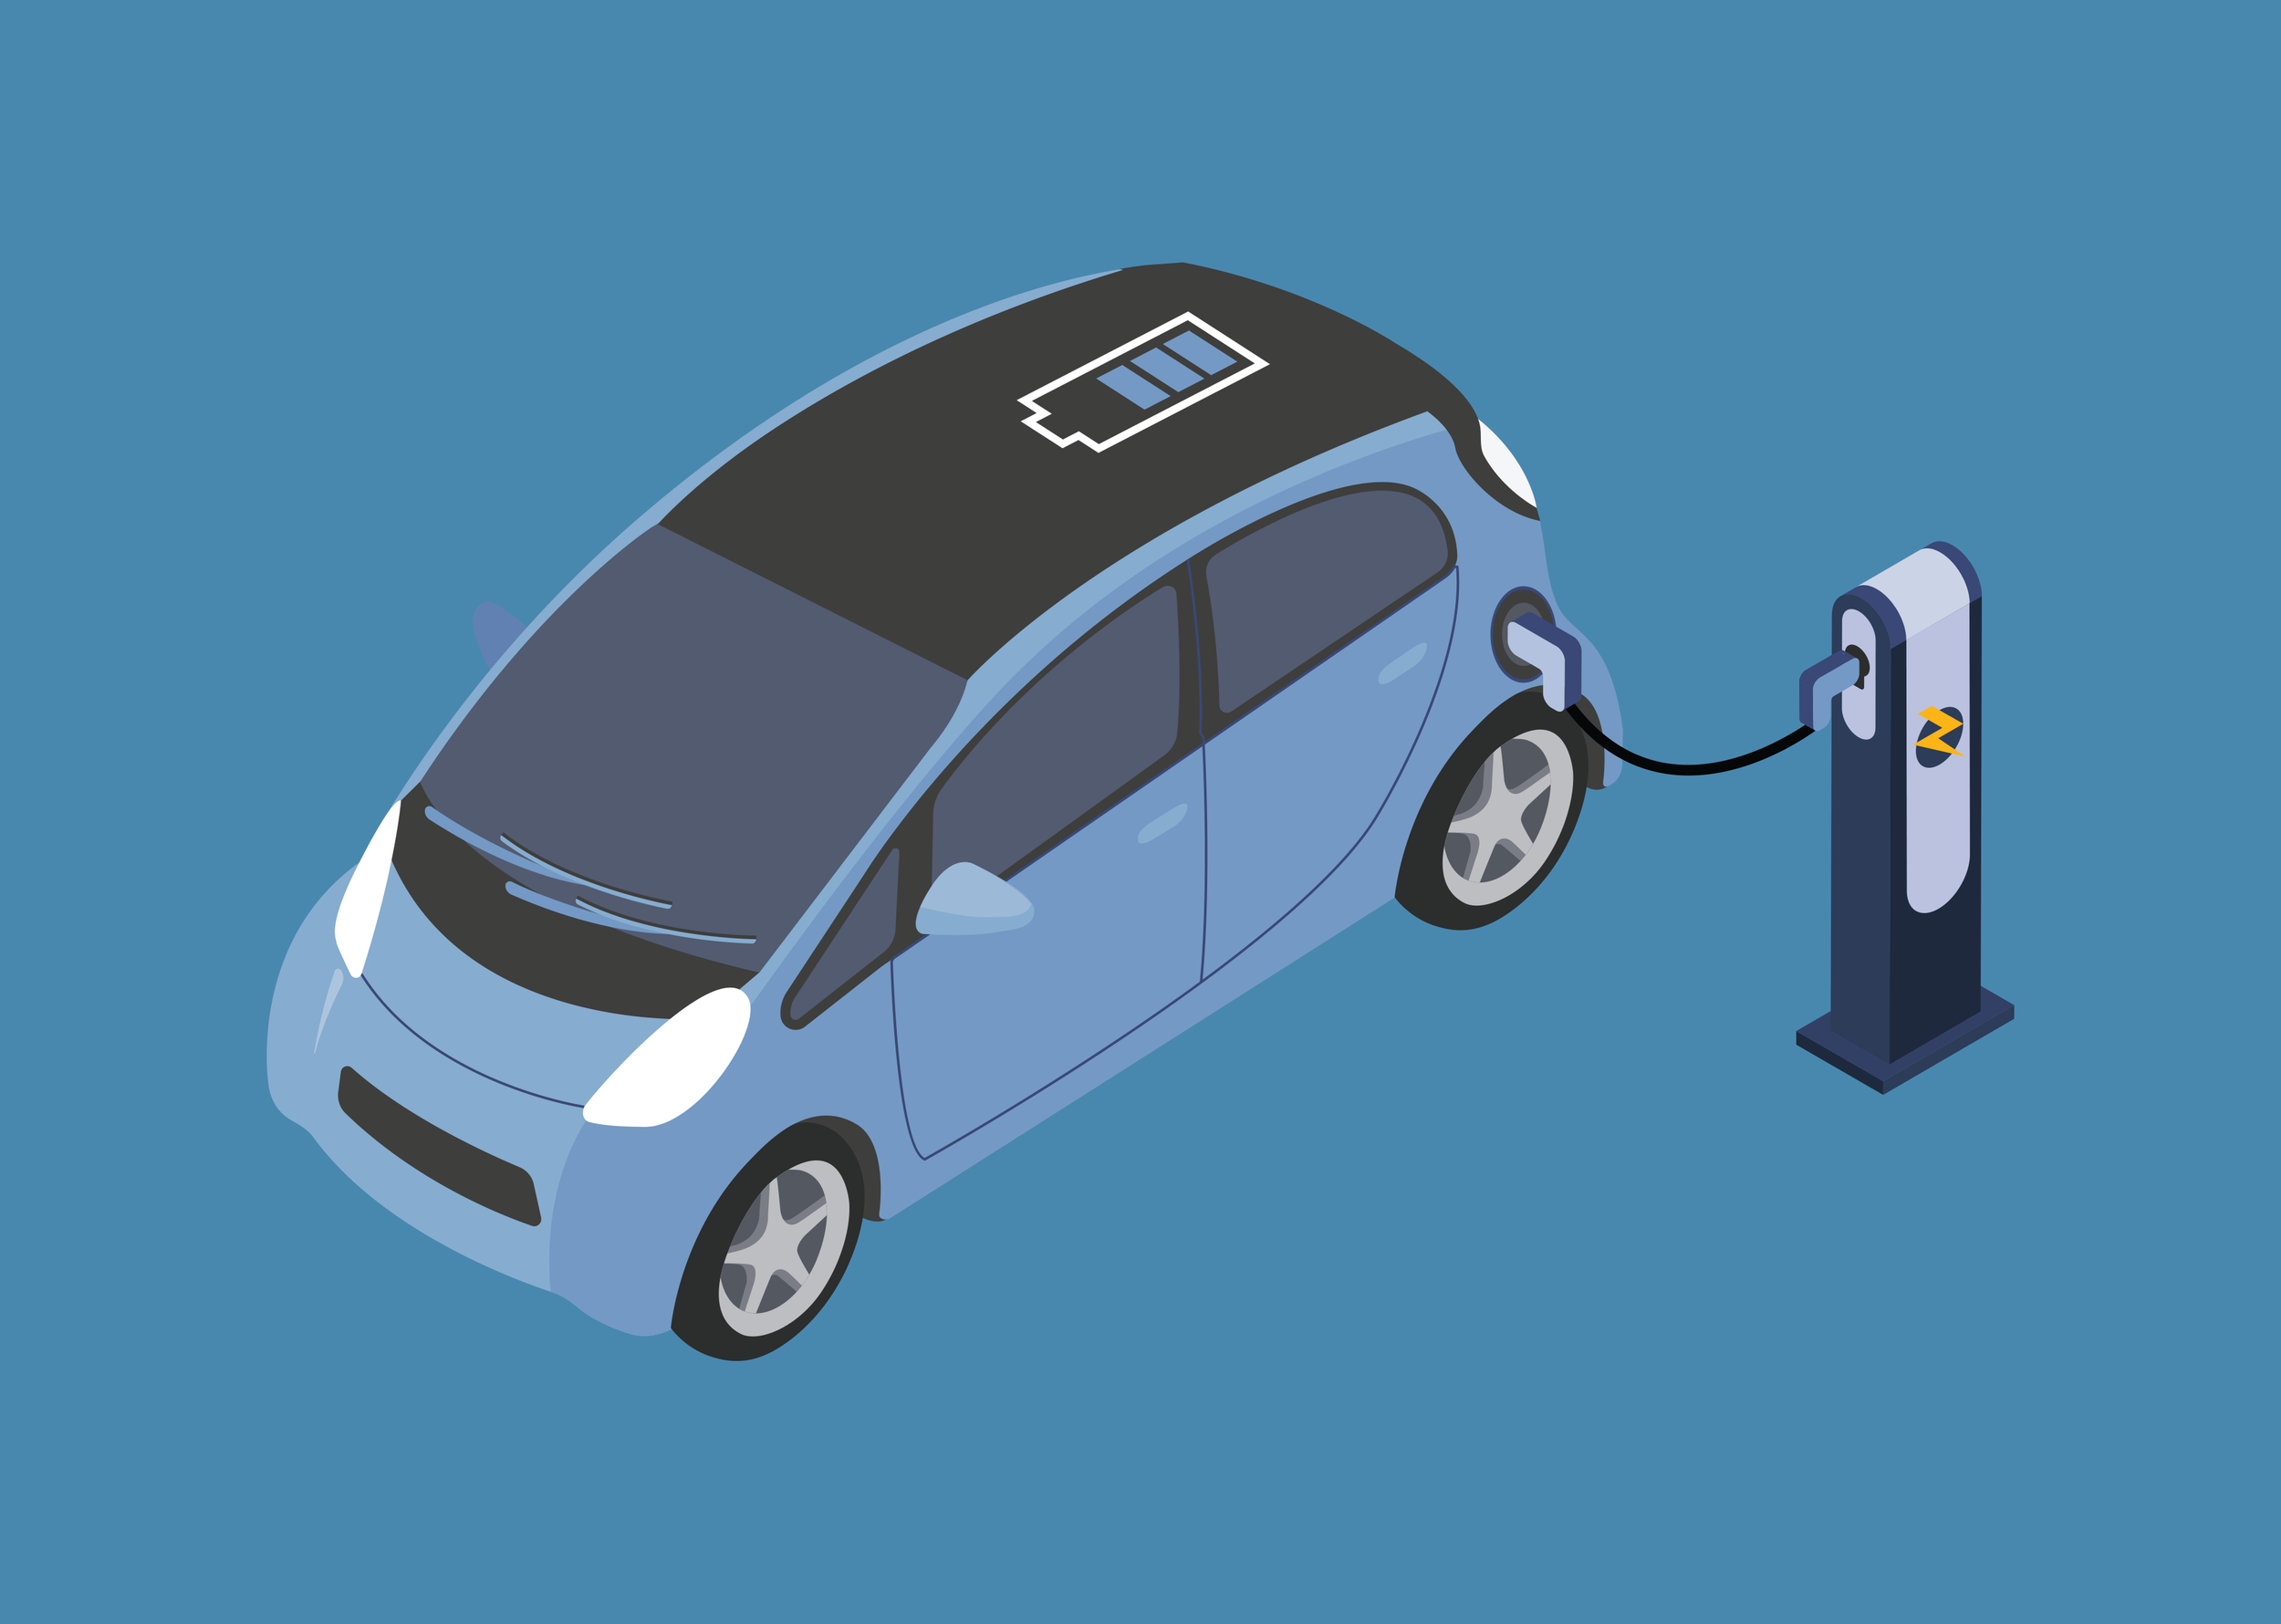 Each charge station can be transformed into a business! - The EVpay technology is already widely used in other payment applications as in taxis and bus ticketing